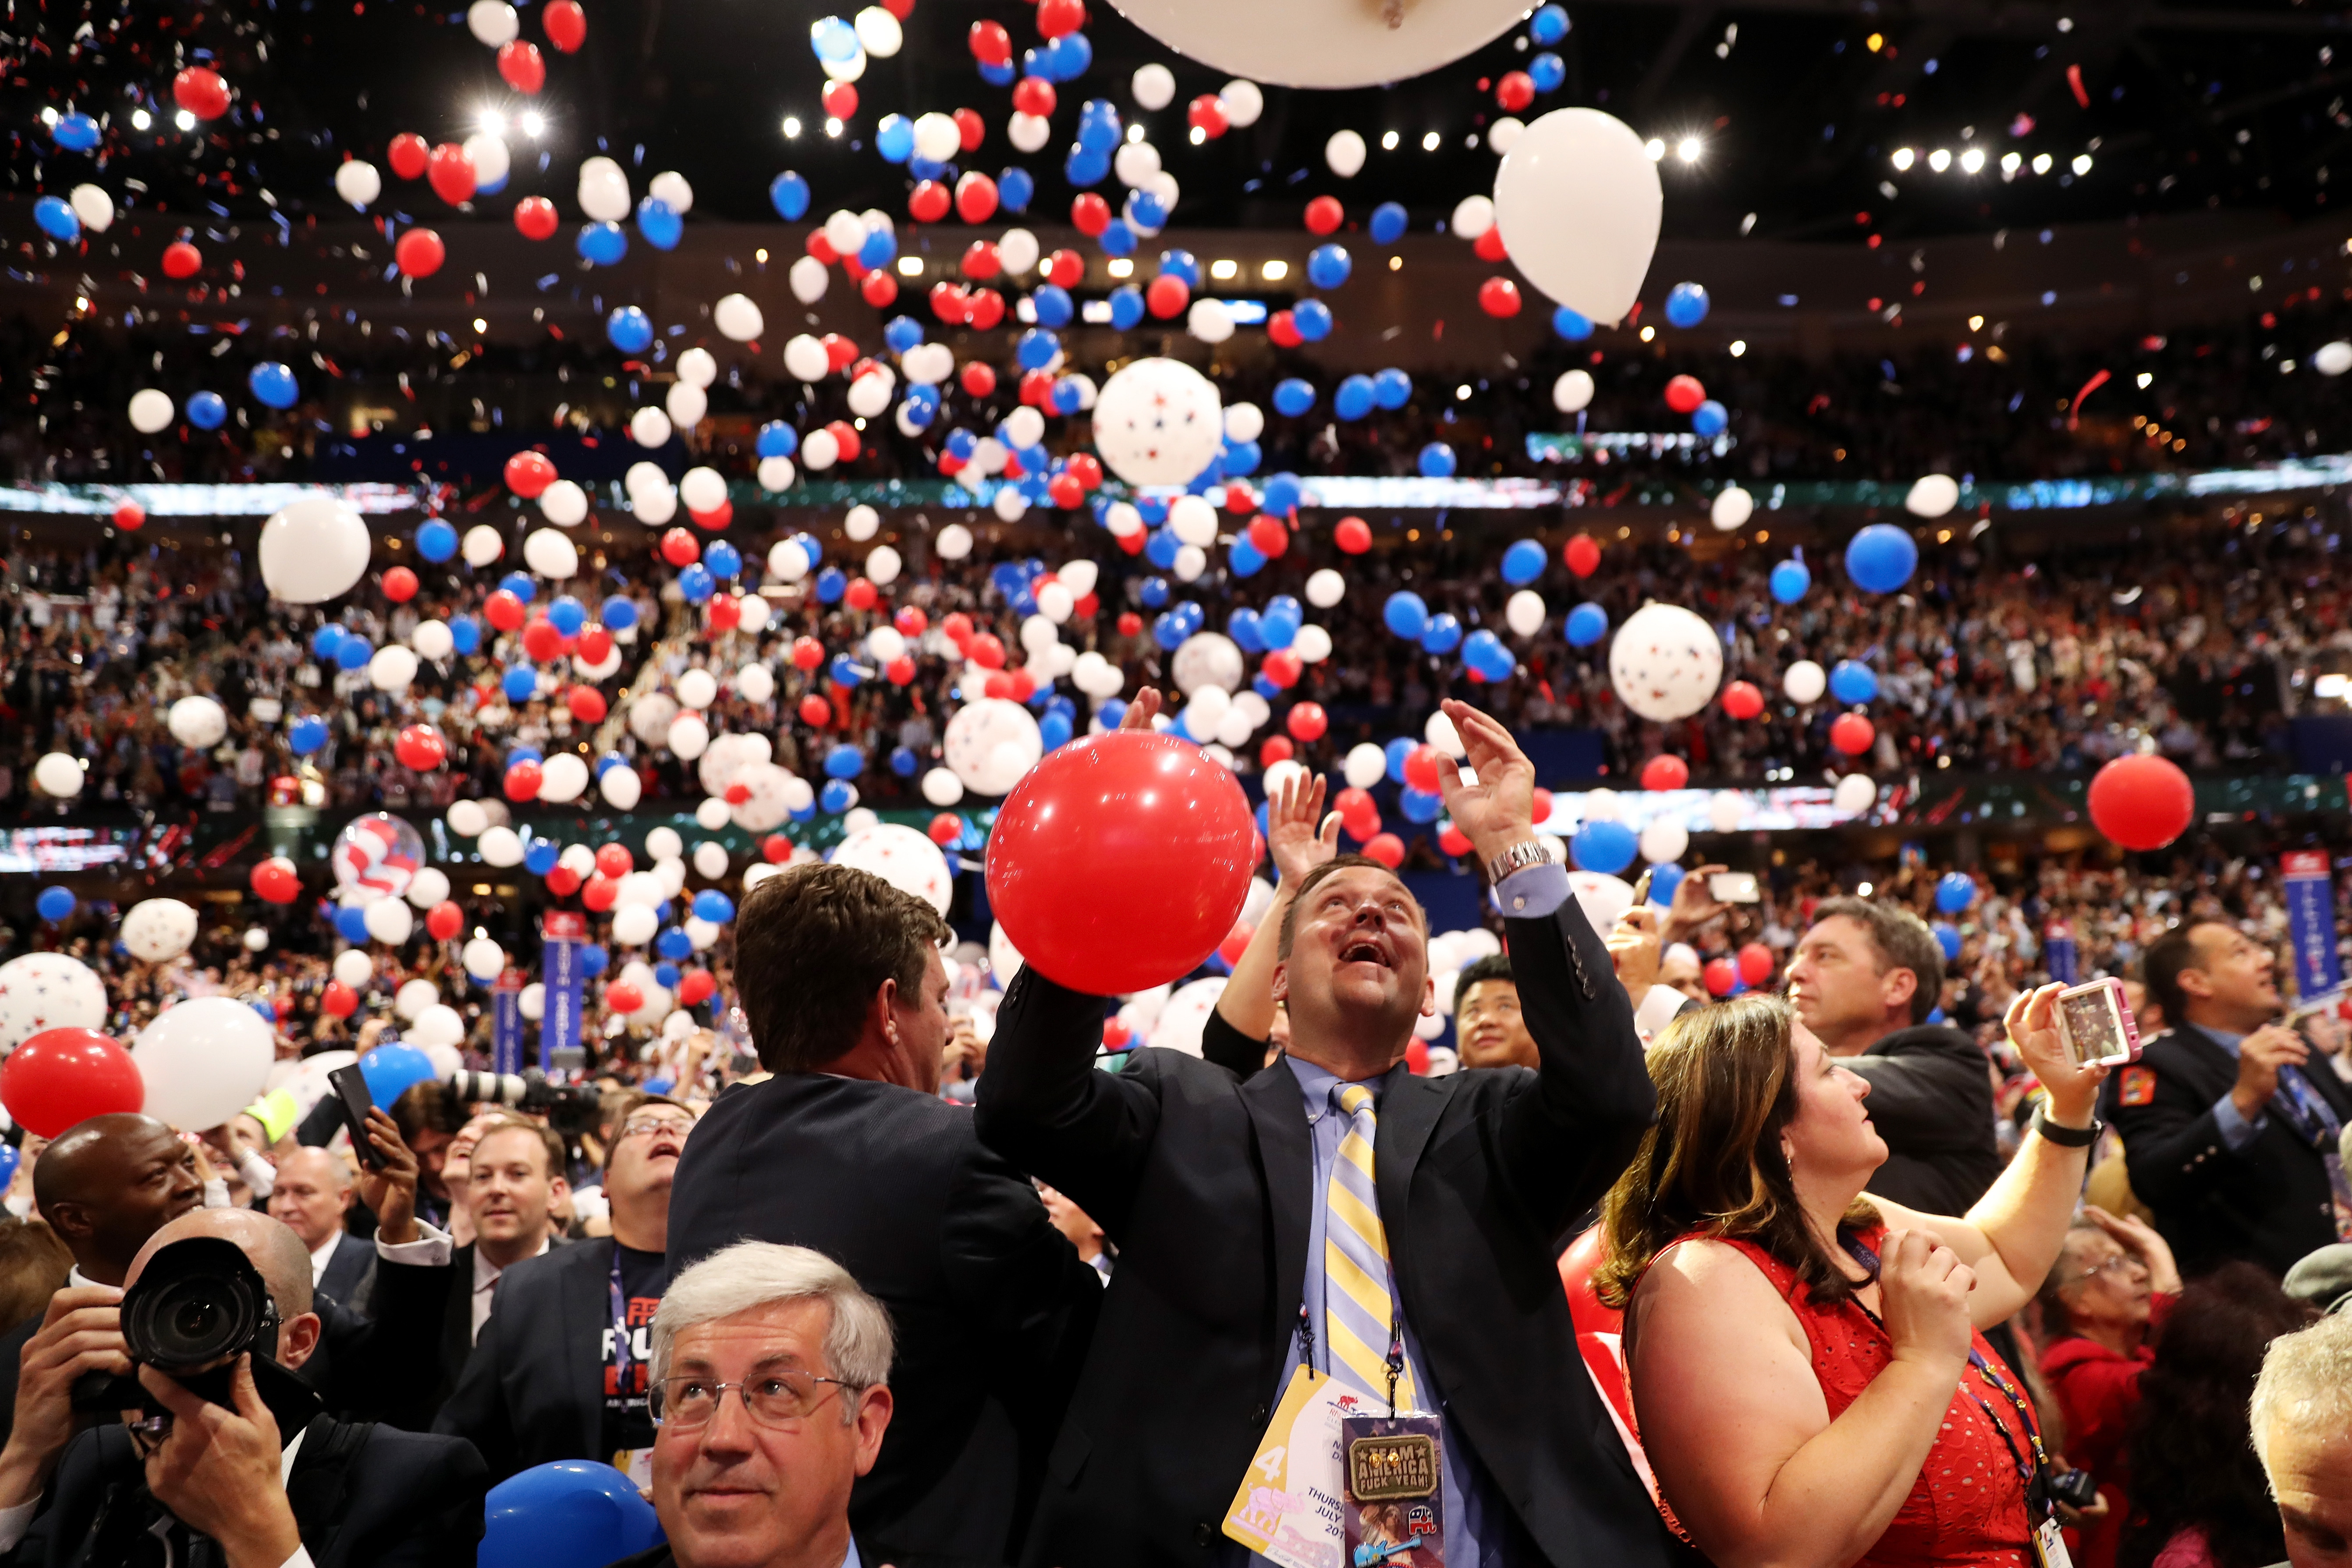 What do conventioneers do when the balloon party's over?